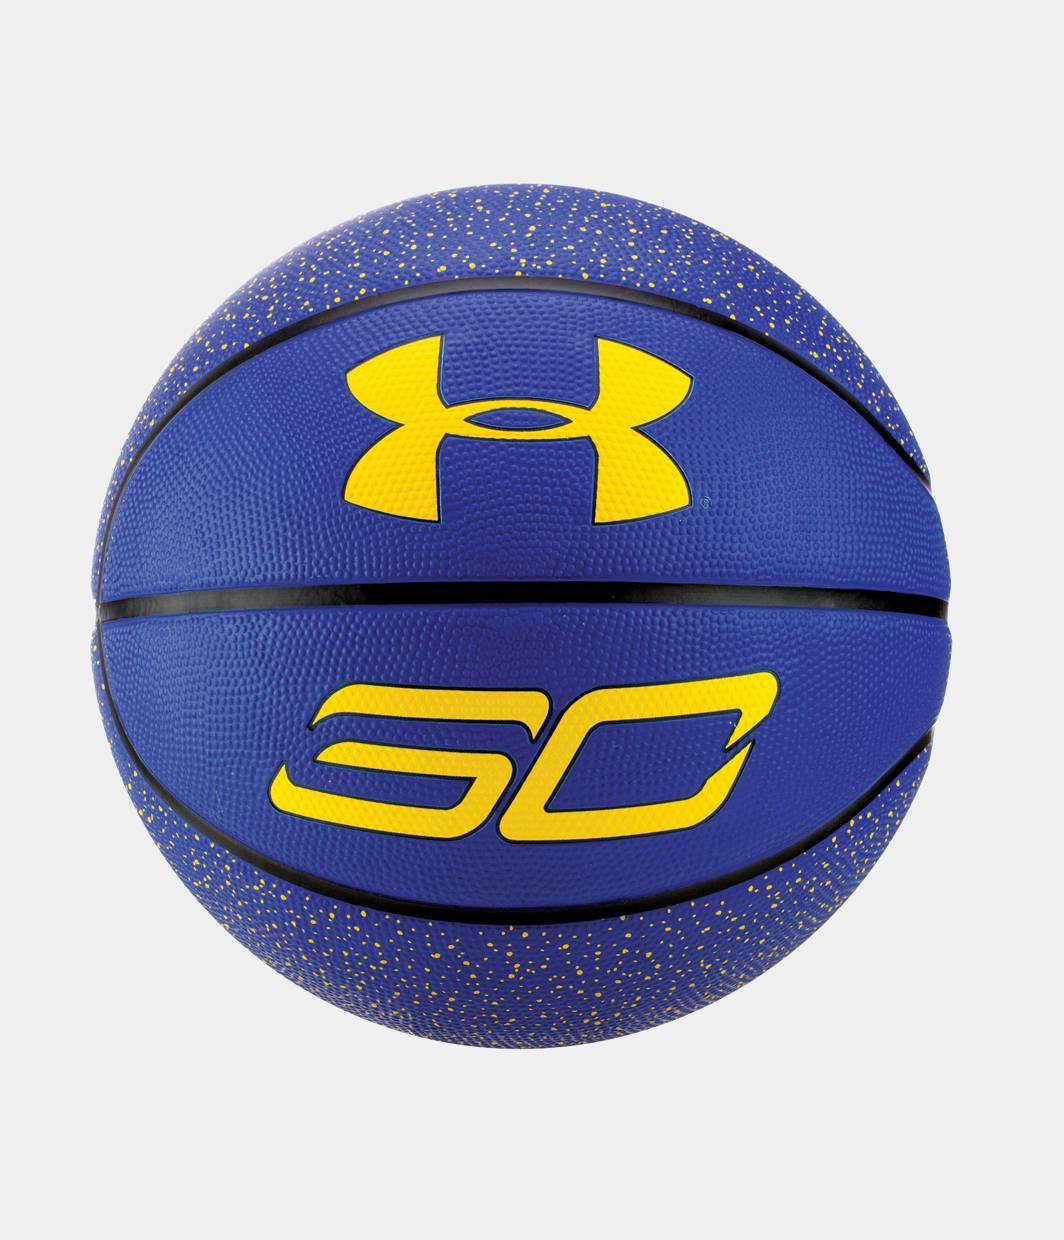 sc30 mini basketball under armour us. Black Bedroom Furniture Sets. Home Design Ideas